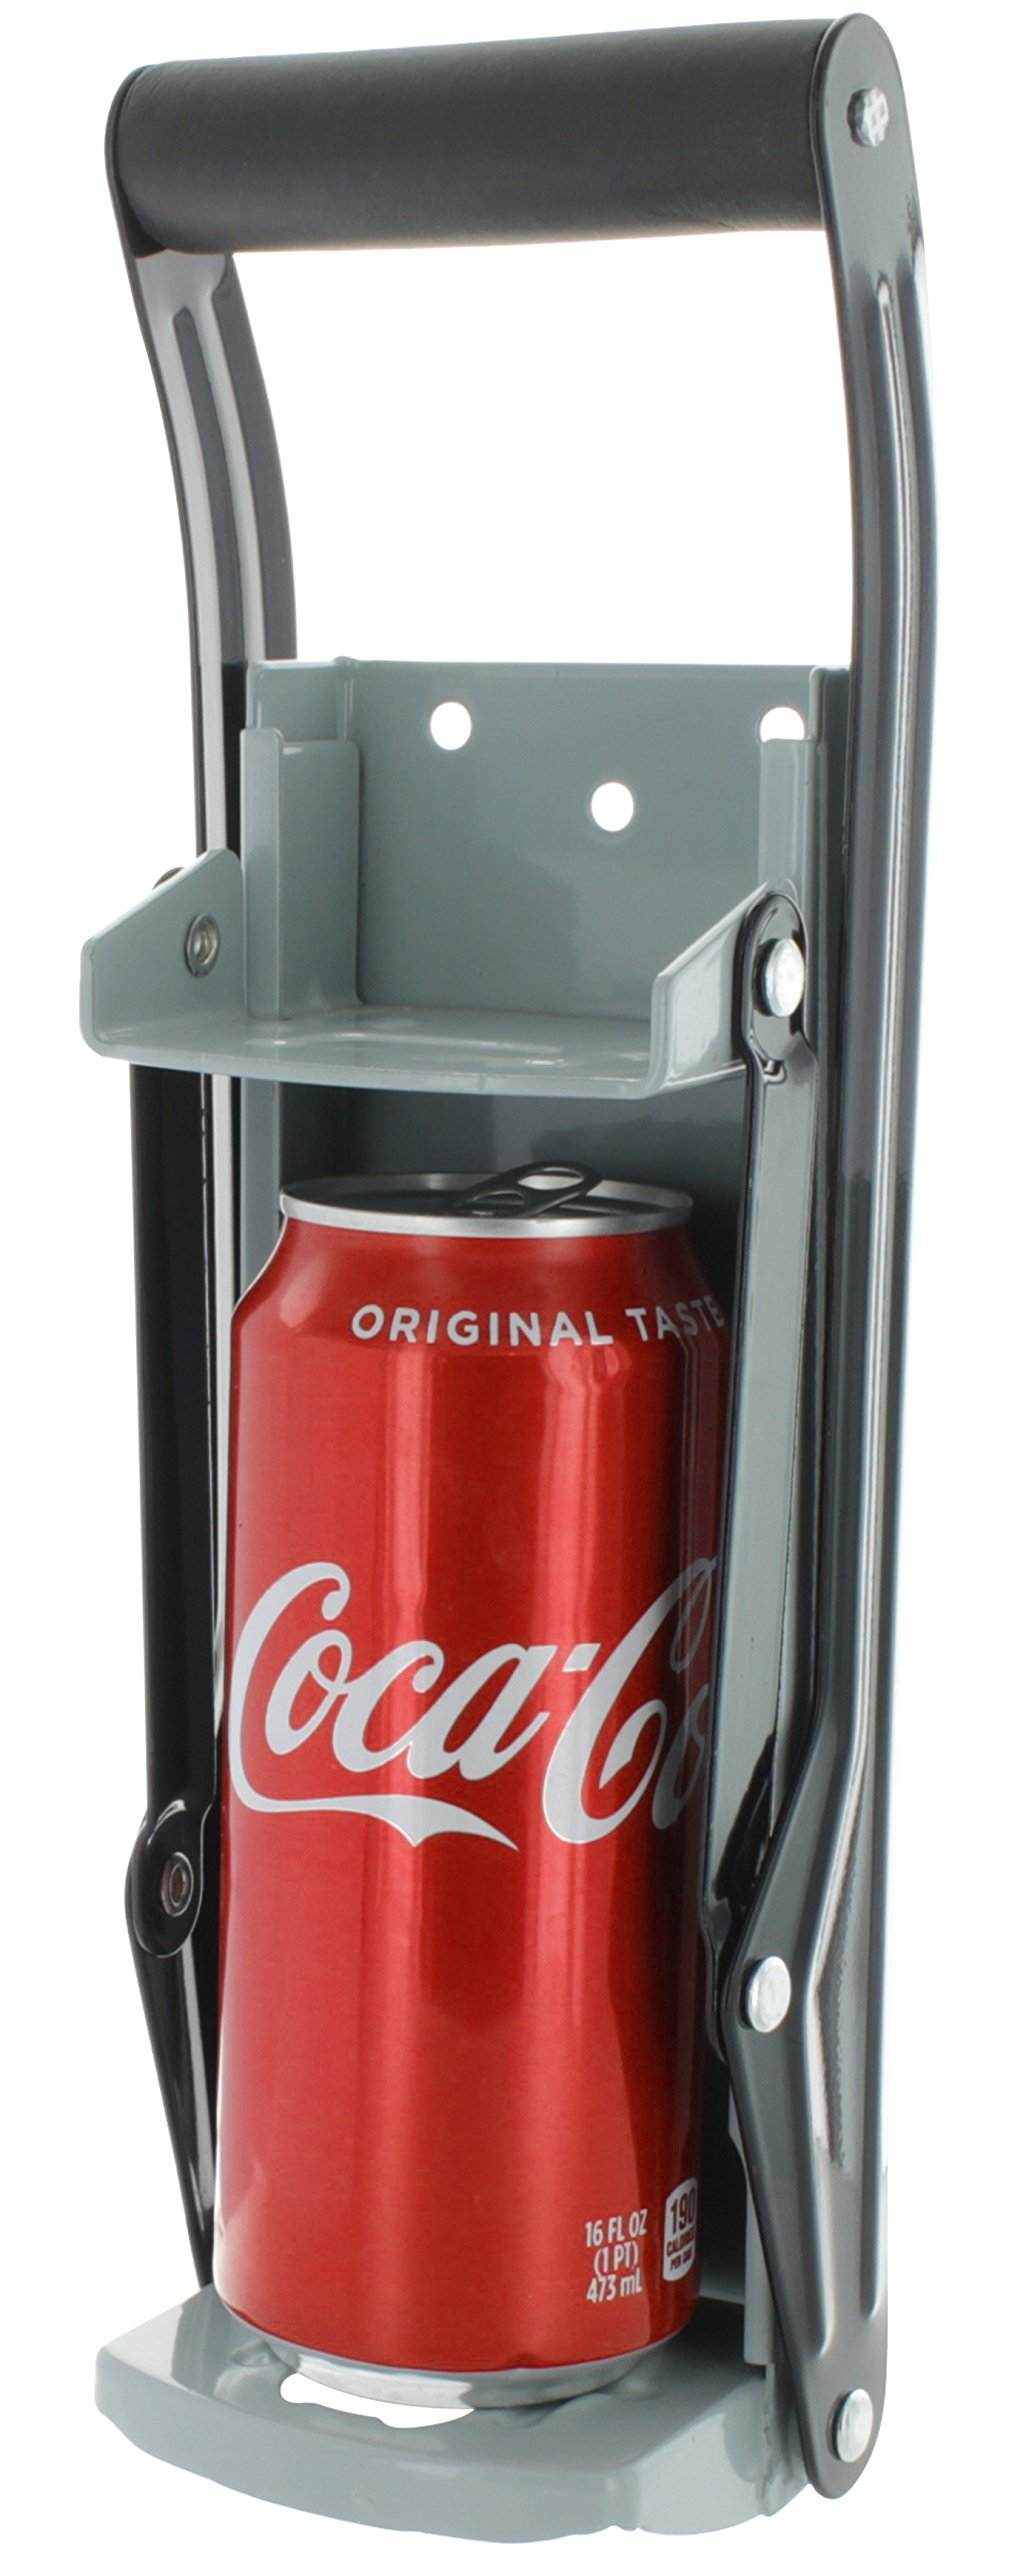 Vanitek 16 oz Aluminum Can Crusher & Bottle Opener | Heavy Duty Large Metal Wall Mounted Soda Beer Smasher - Eco-Friendly Recycling Tool by Vanitek